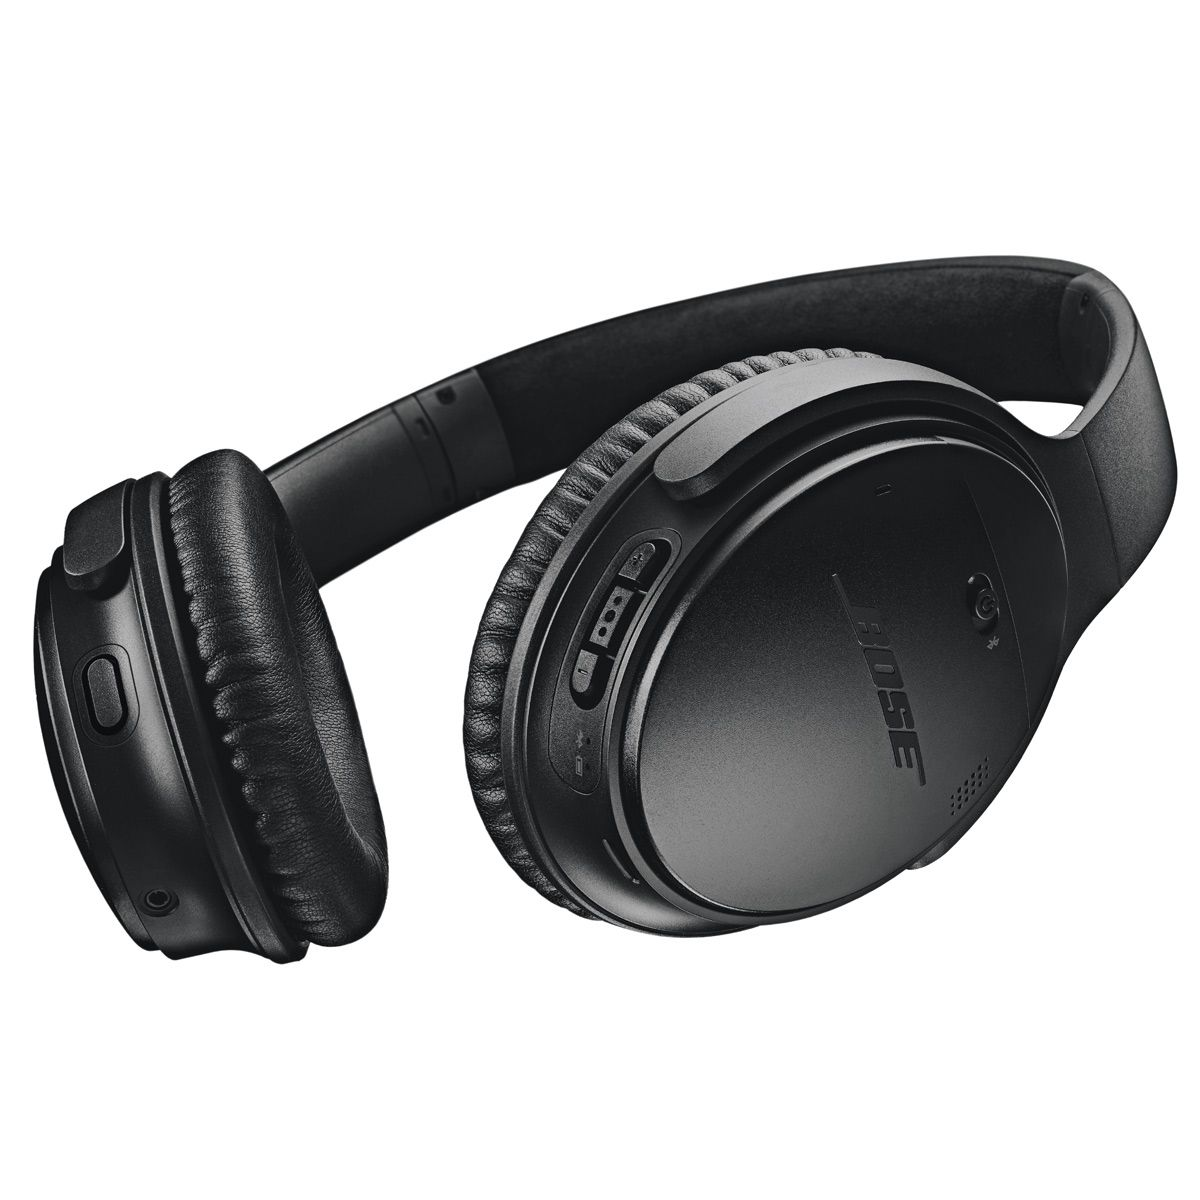 Details About Bose Quietcomfort 35 Wireless Noise Cancelling Headphones Ii In 2020 Bluetooth Noise Cancelling Headphones Noise Cancelling Headphones Wireless Noise Cancelling Headphones